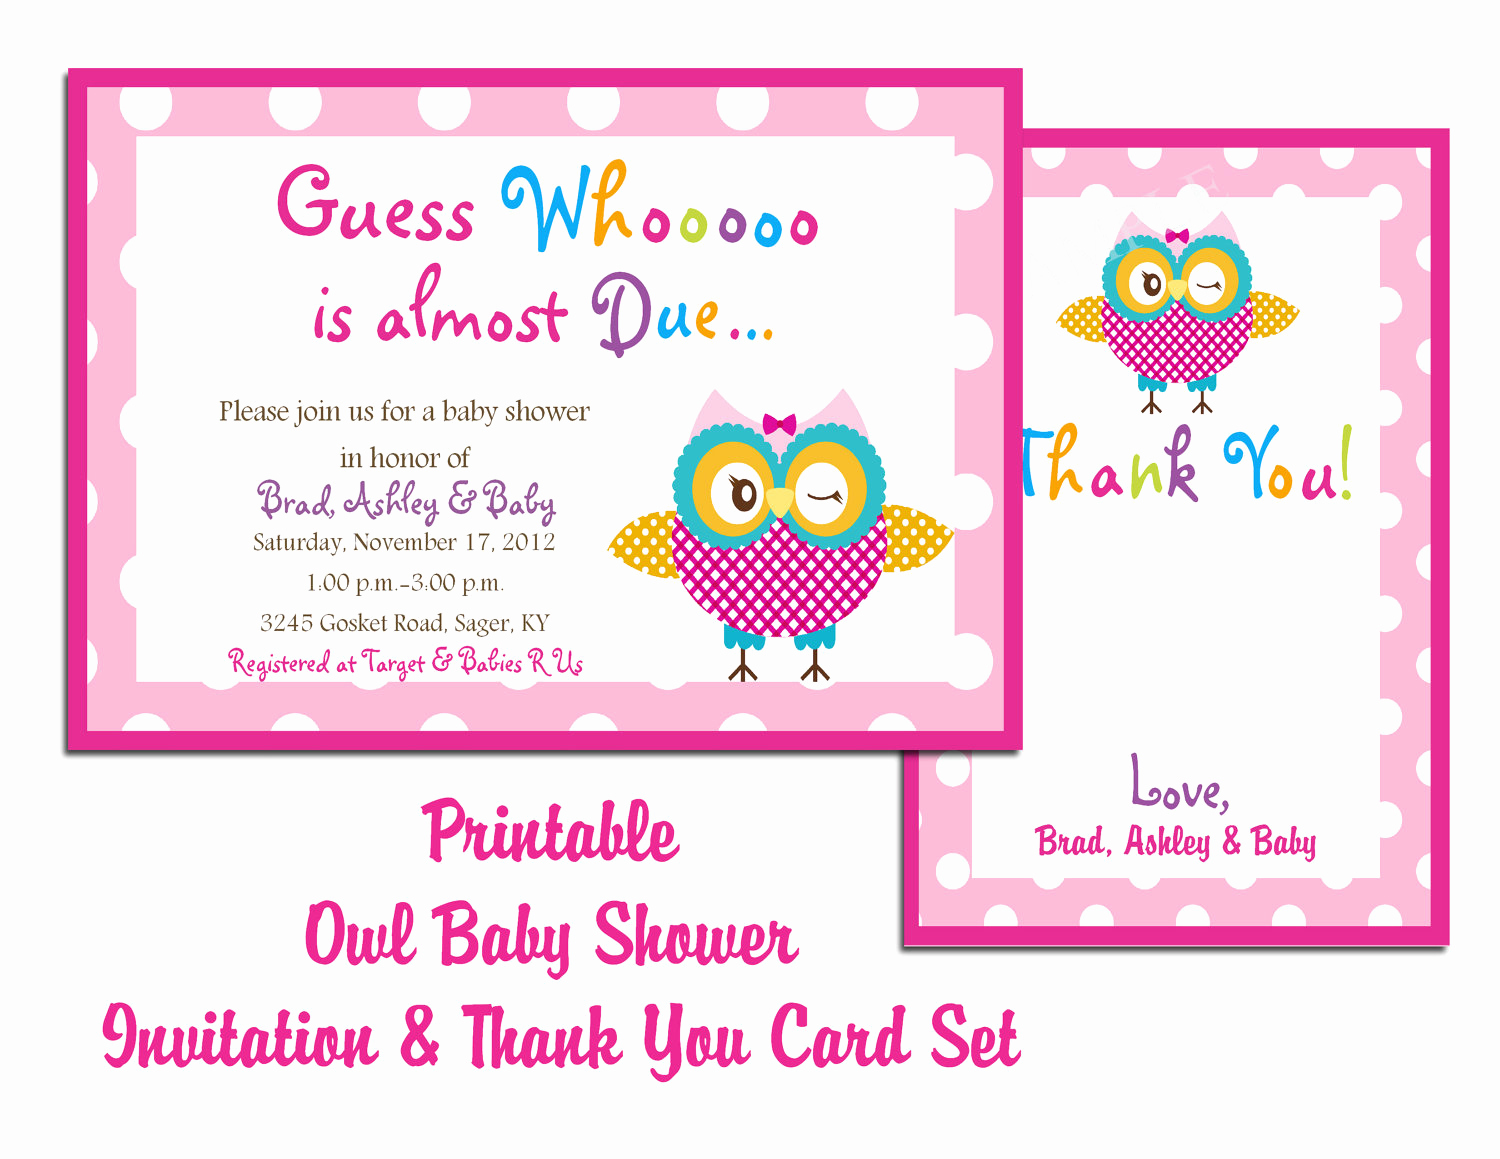 Printable Baby Shower Invitation Templates Elegant Blog